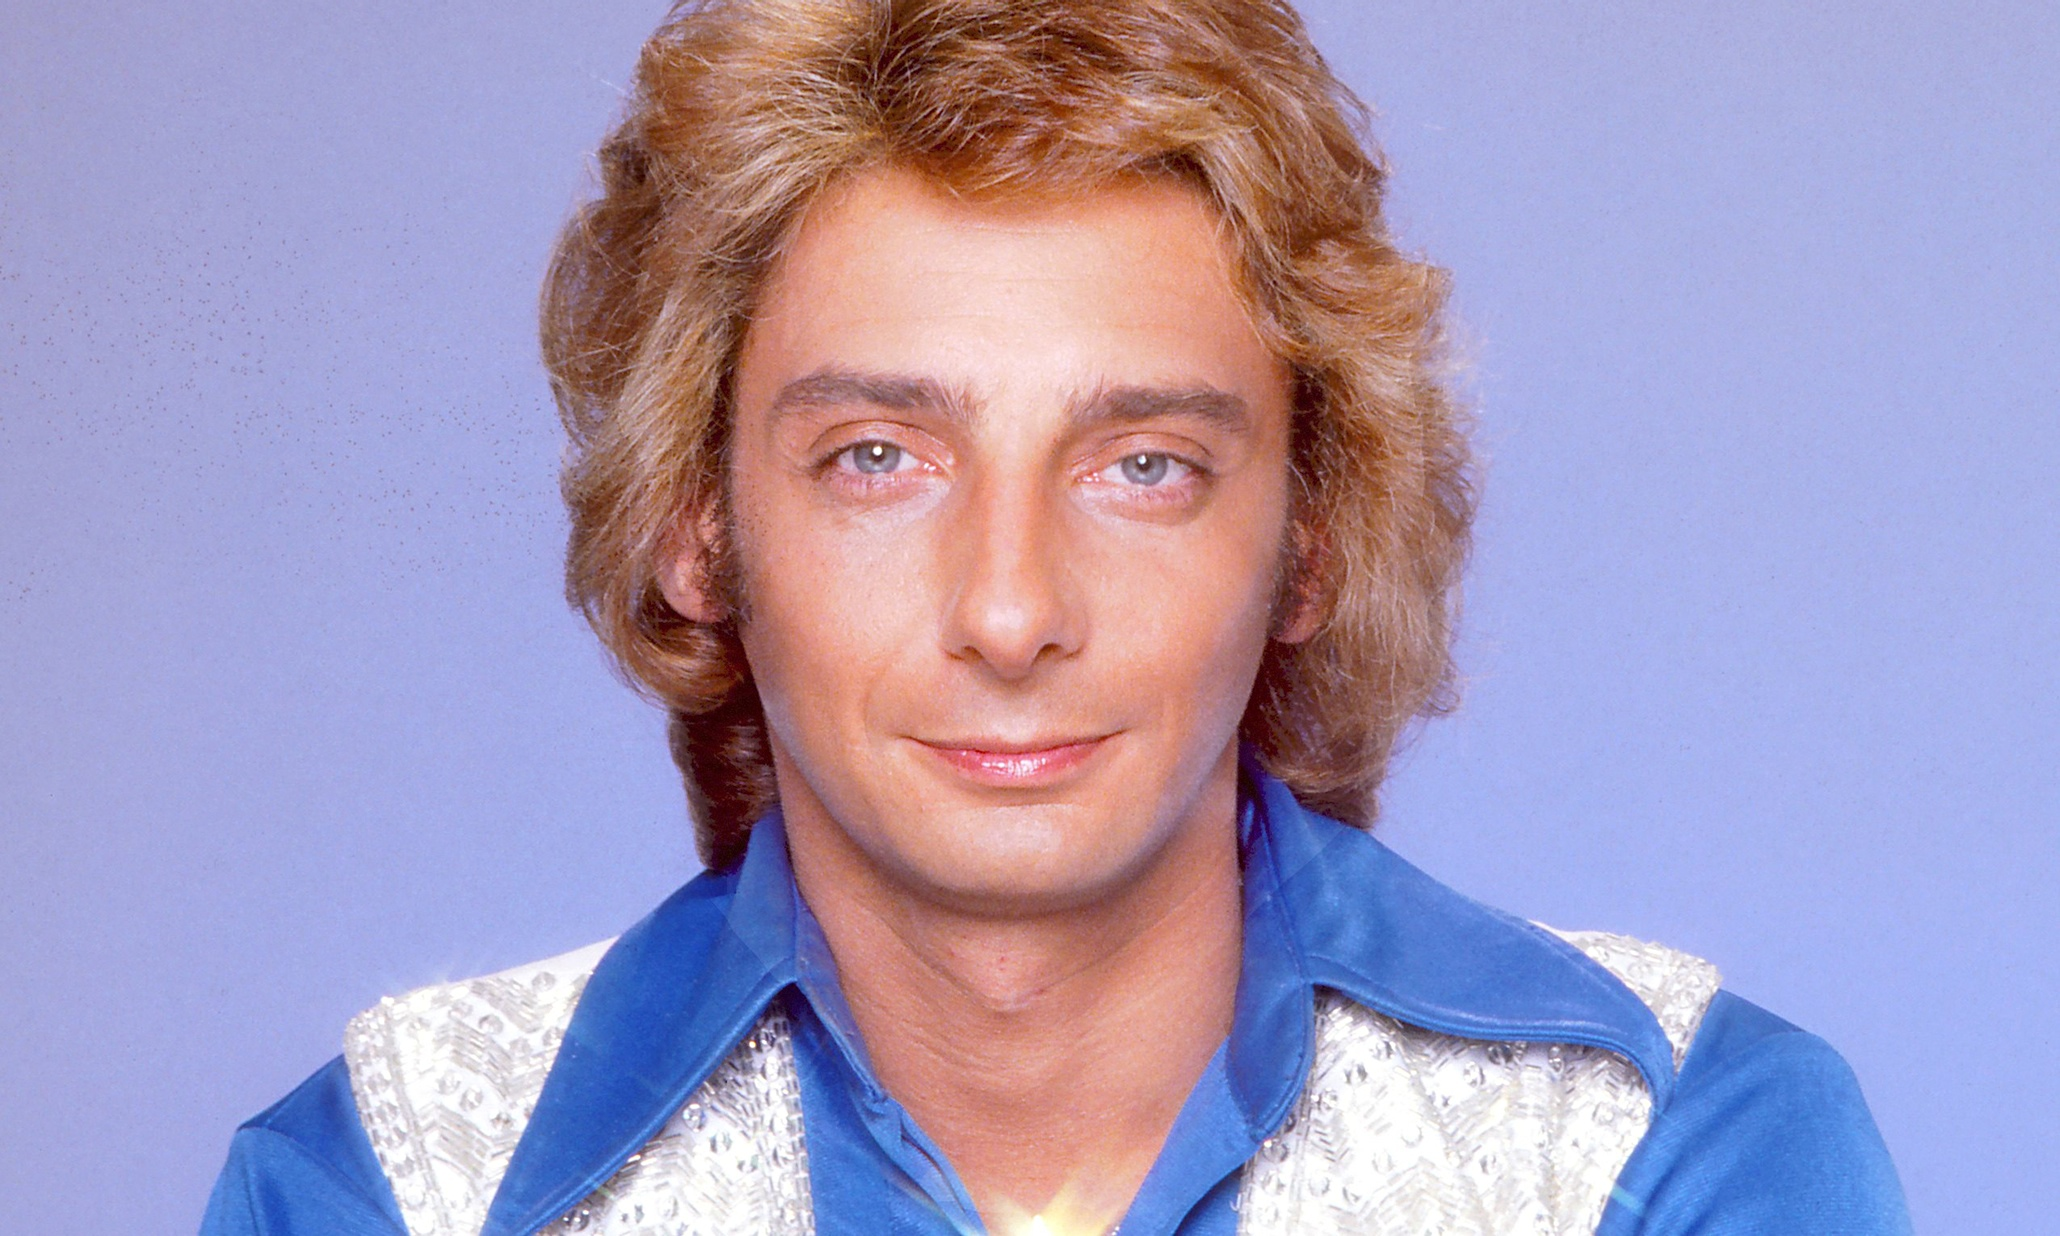 Barry Manilow - Alchetron, The Free Social Encyclopedia